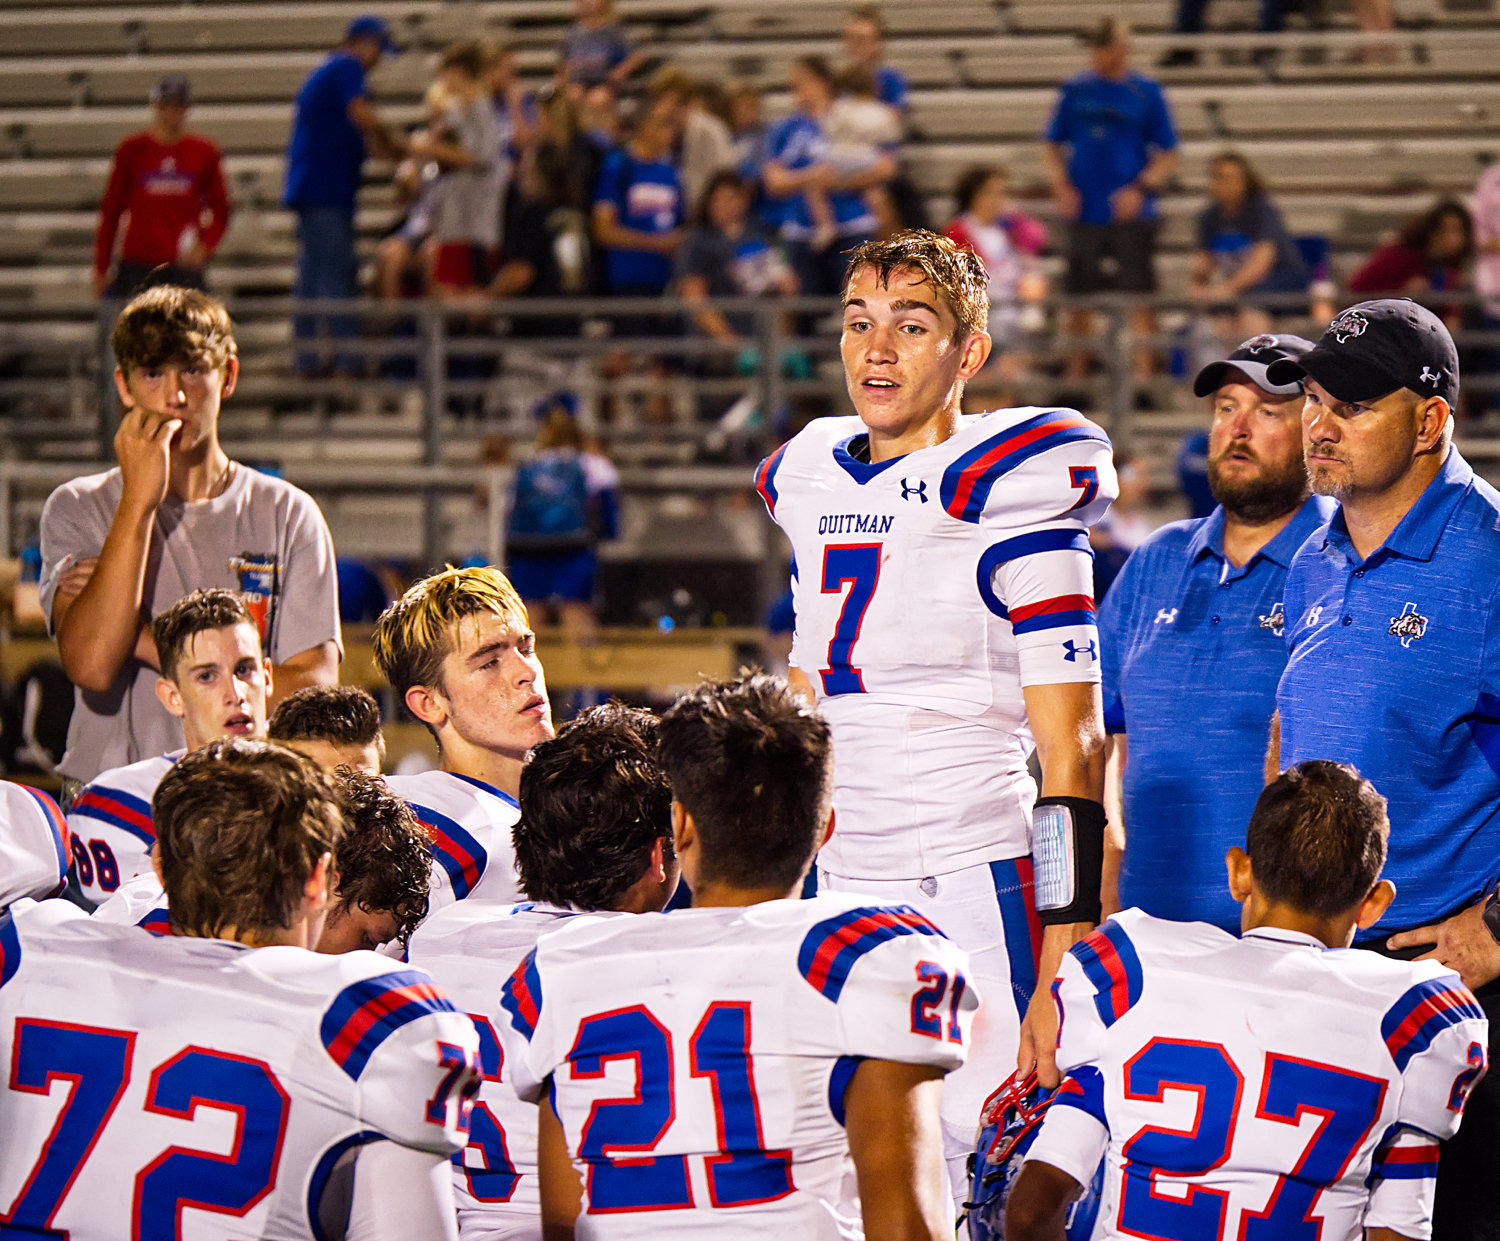 Ben Burroughs, 7, of Quitman addresses his teammates after Friday's loss.